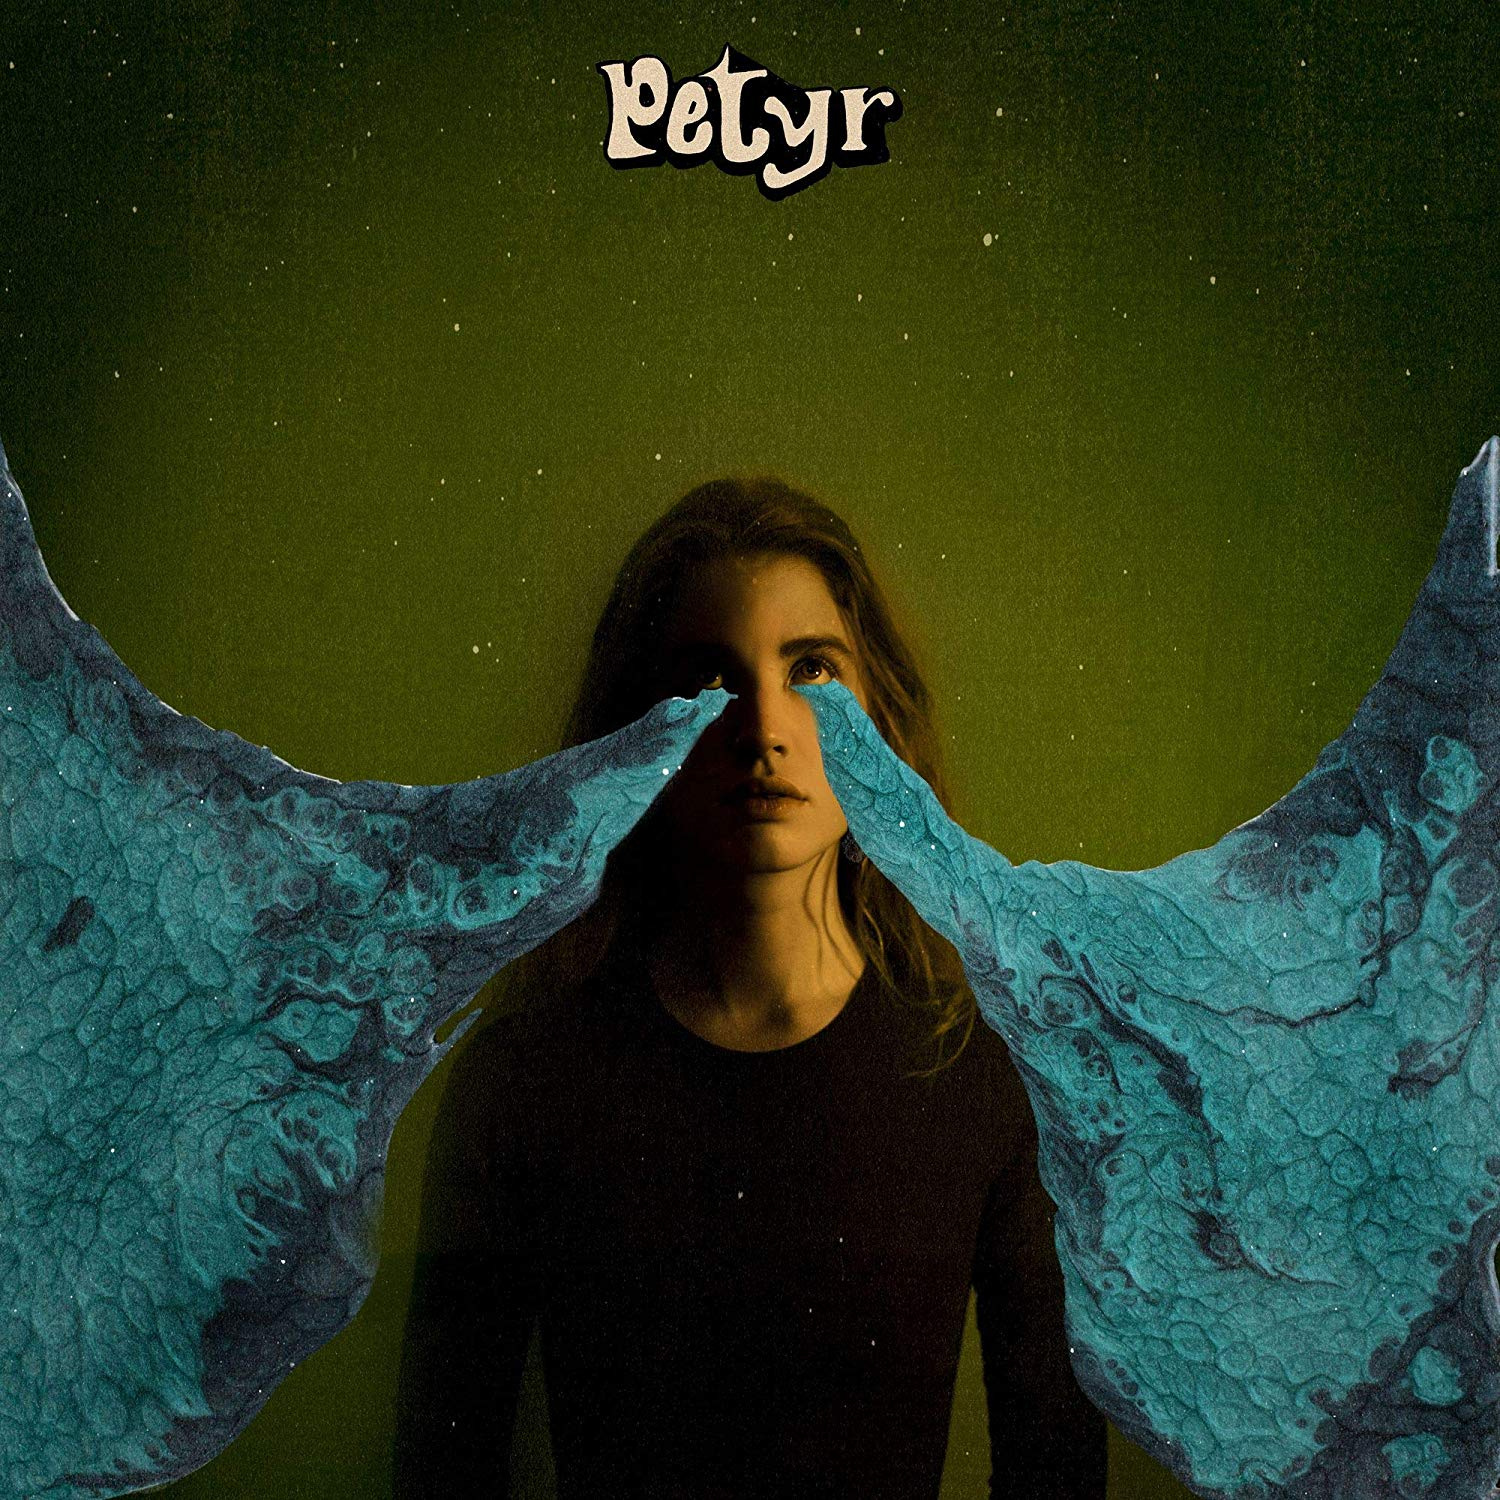 Petyr - Emerald Eyes/wasted Soul